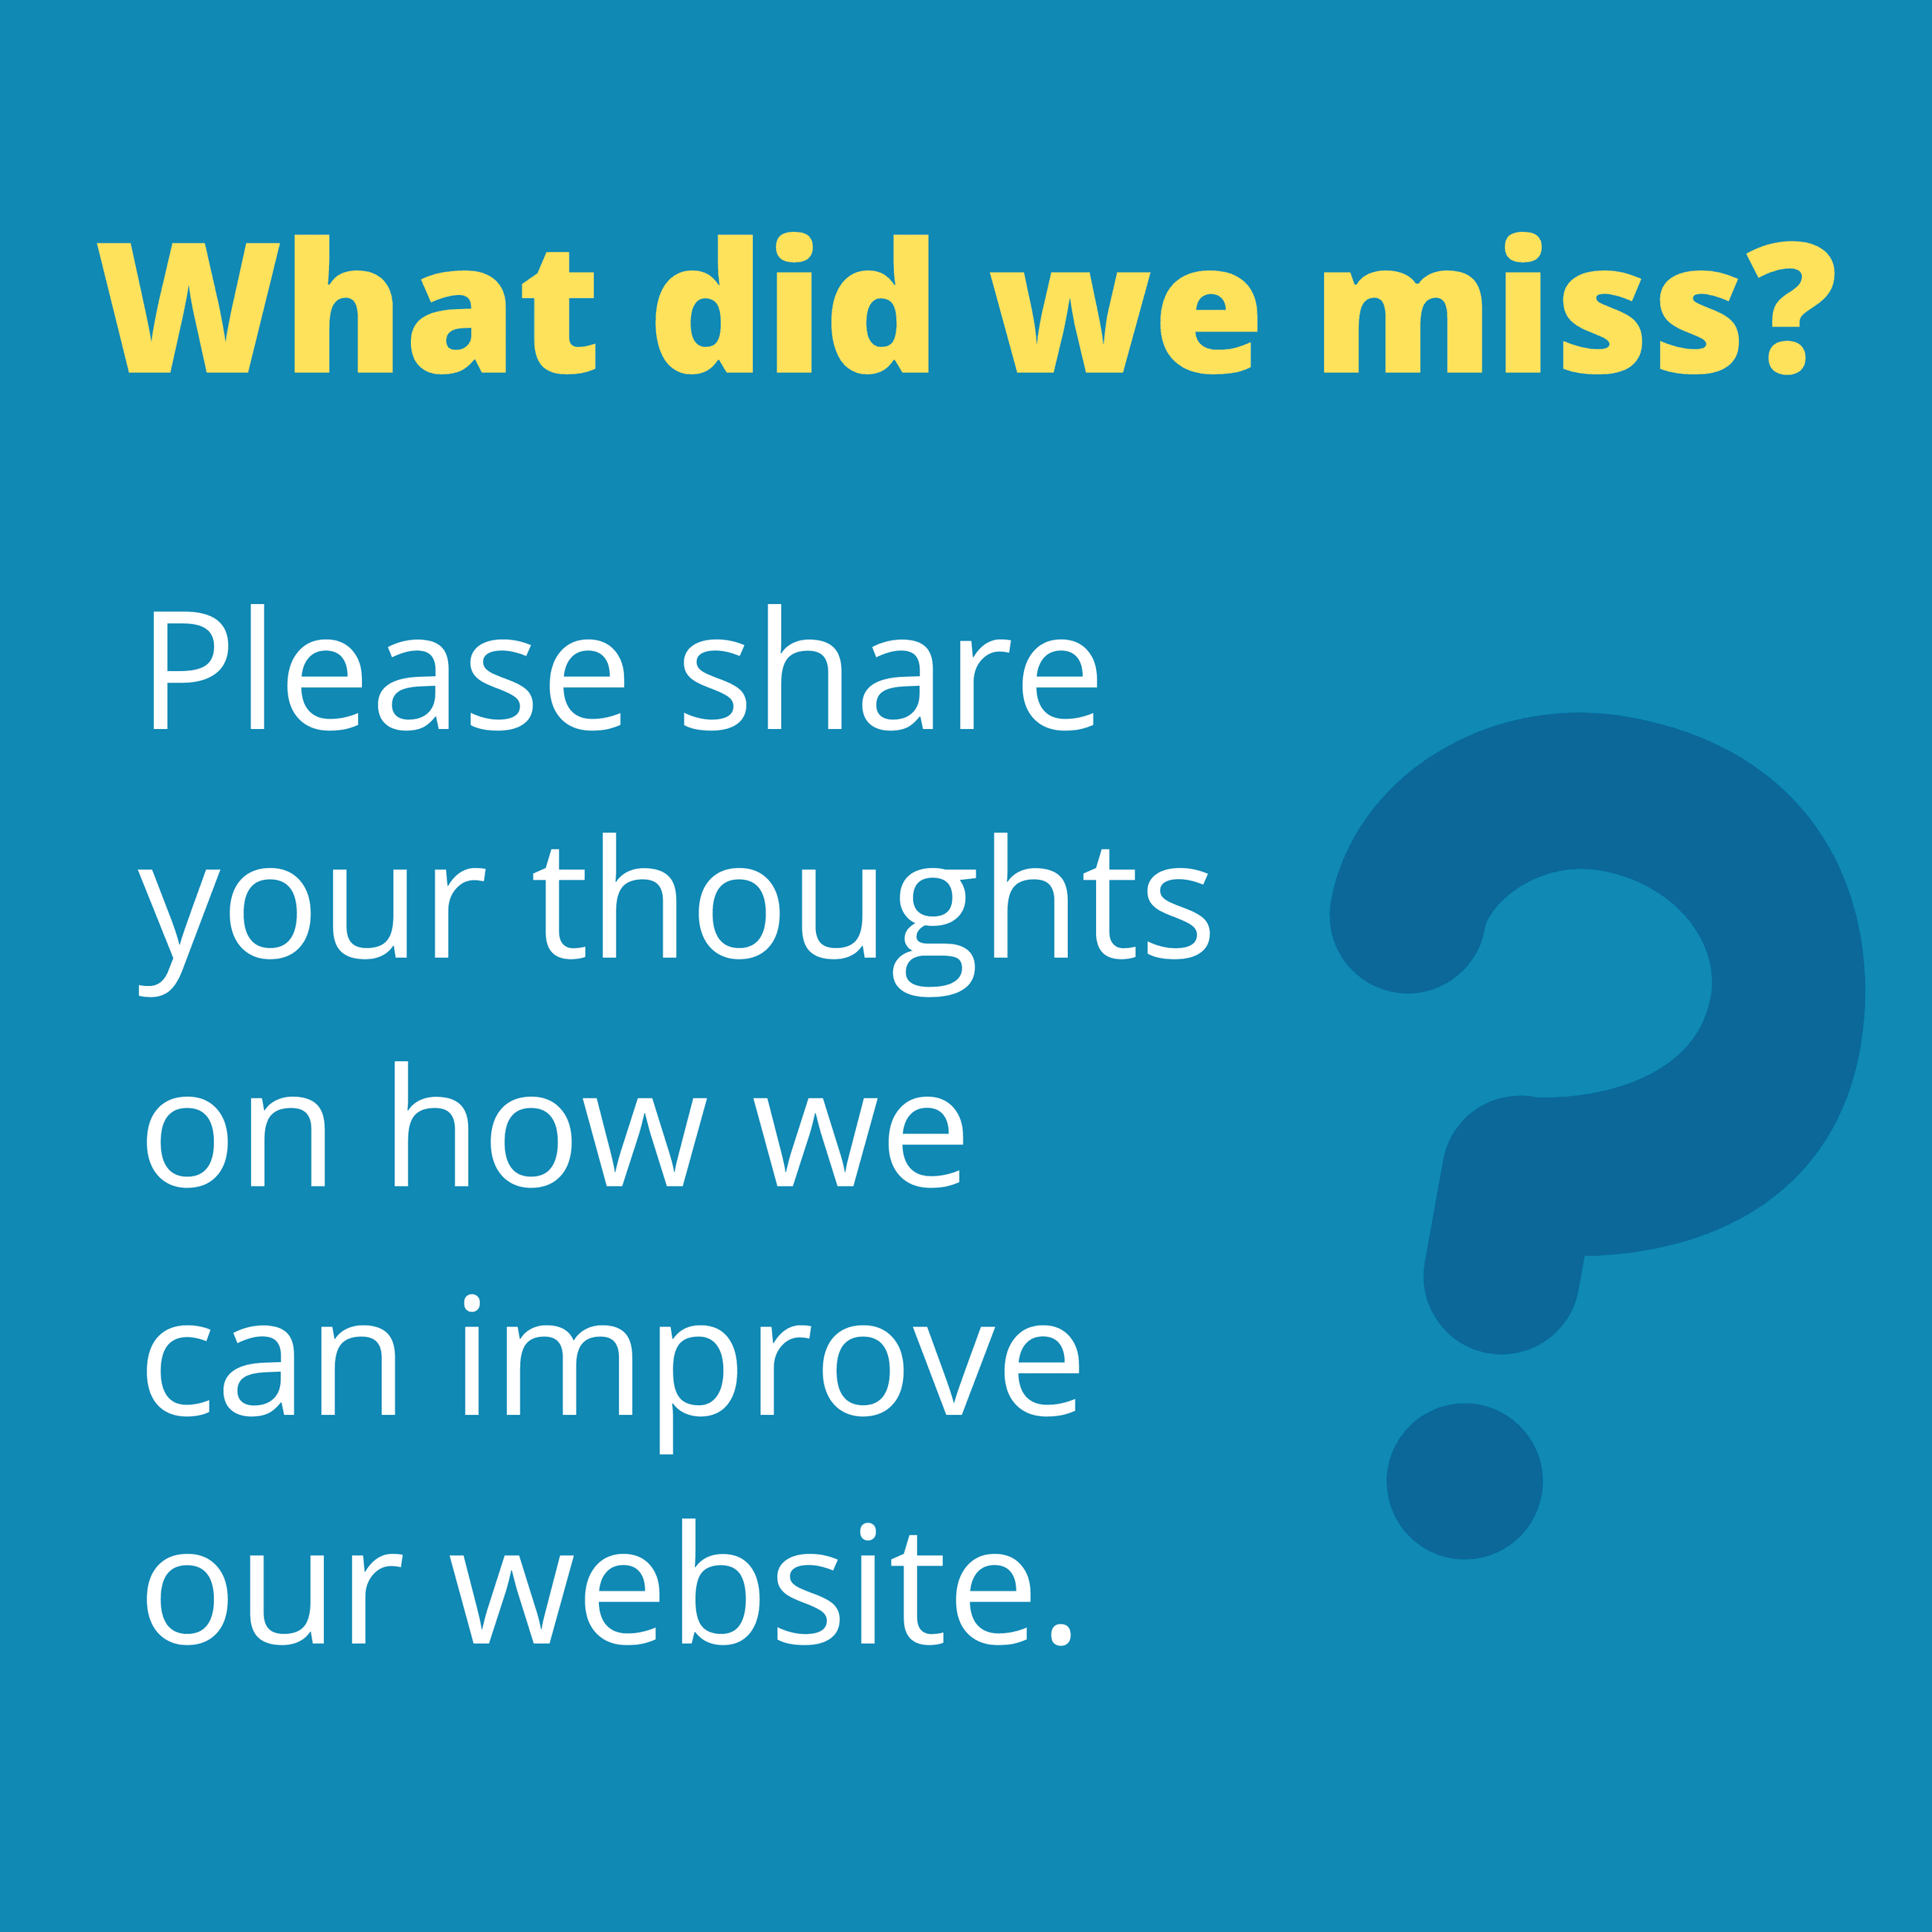 What did we miss? Please give us feedback on our website.